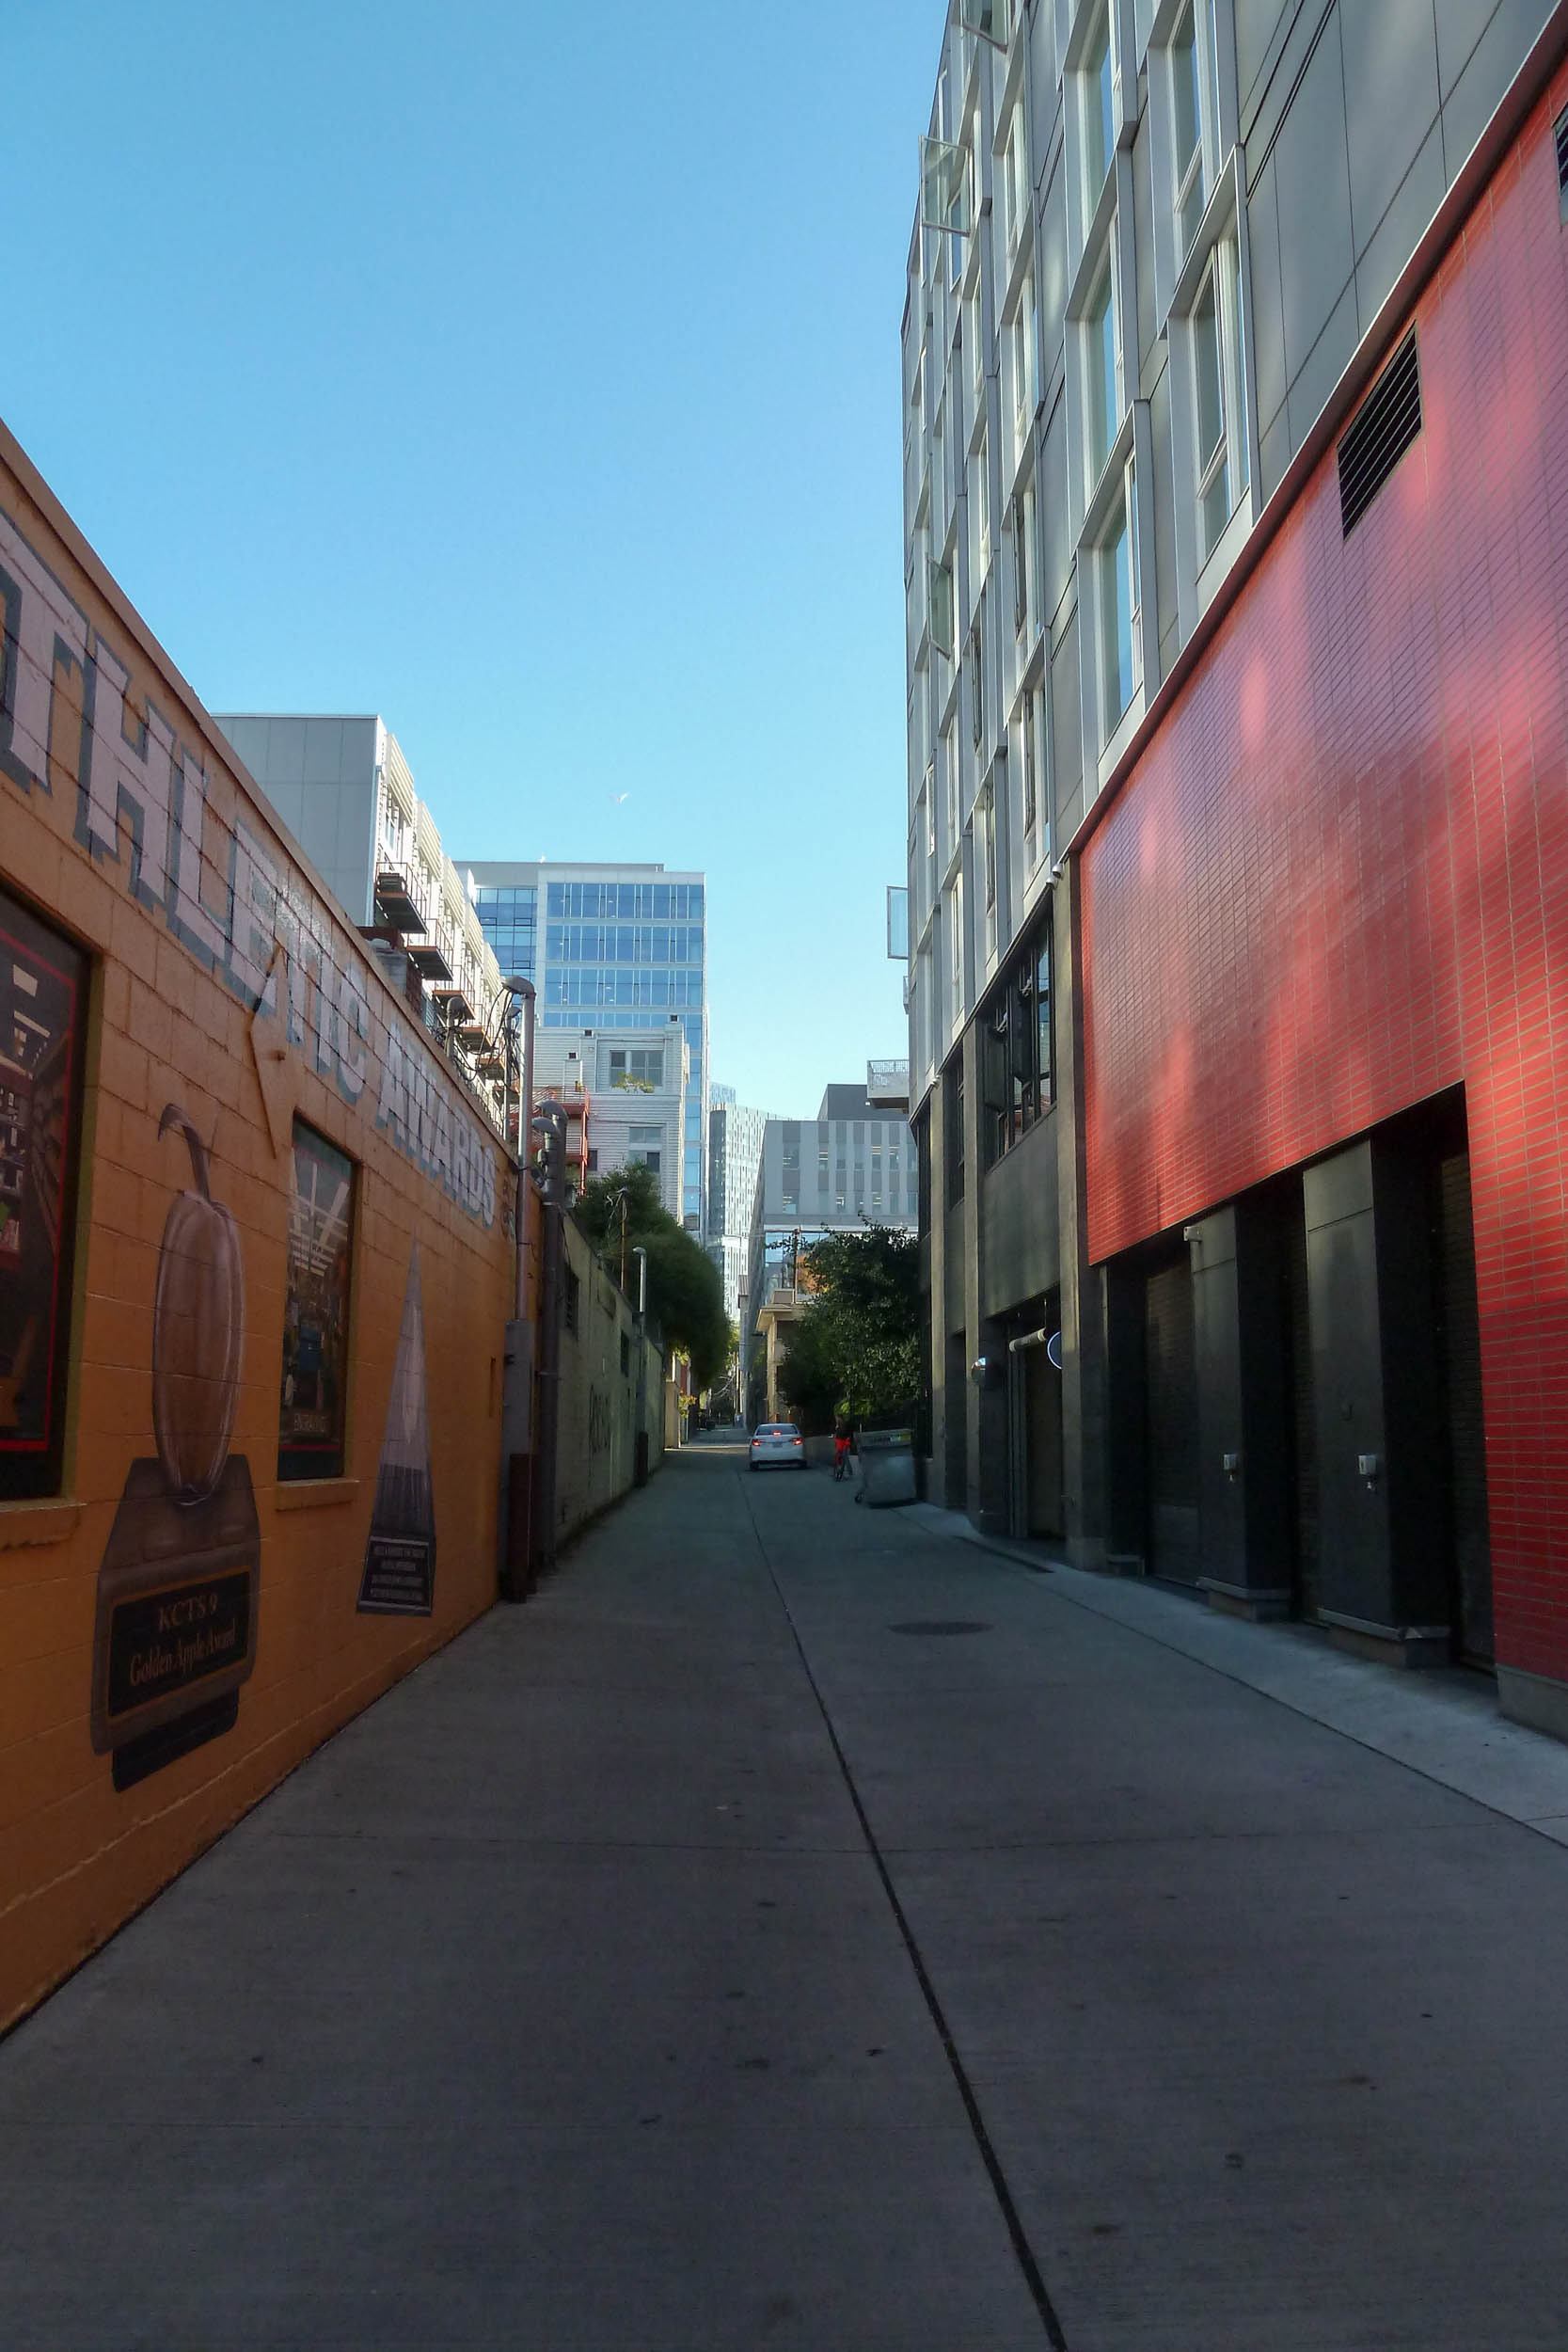 alley of color